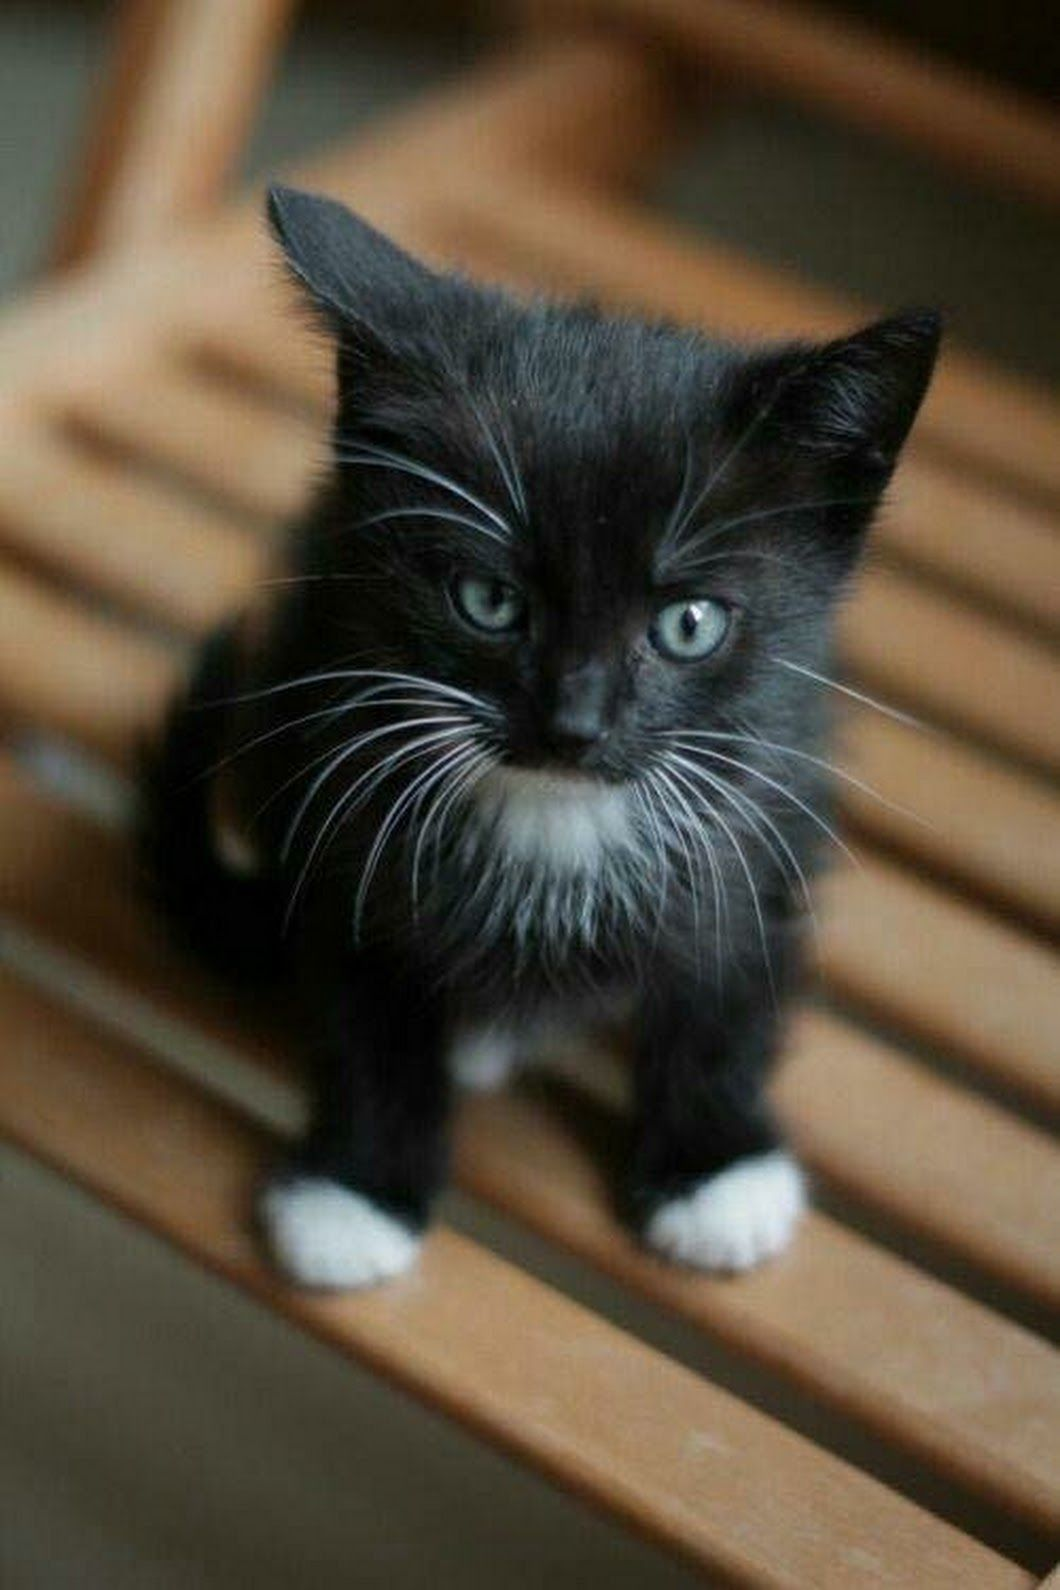 Cute Black And White Kitten Look At That Expression It S Ready For Trouble Baby Cats Pretty Cats Kittens Cutest